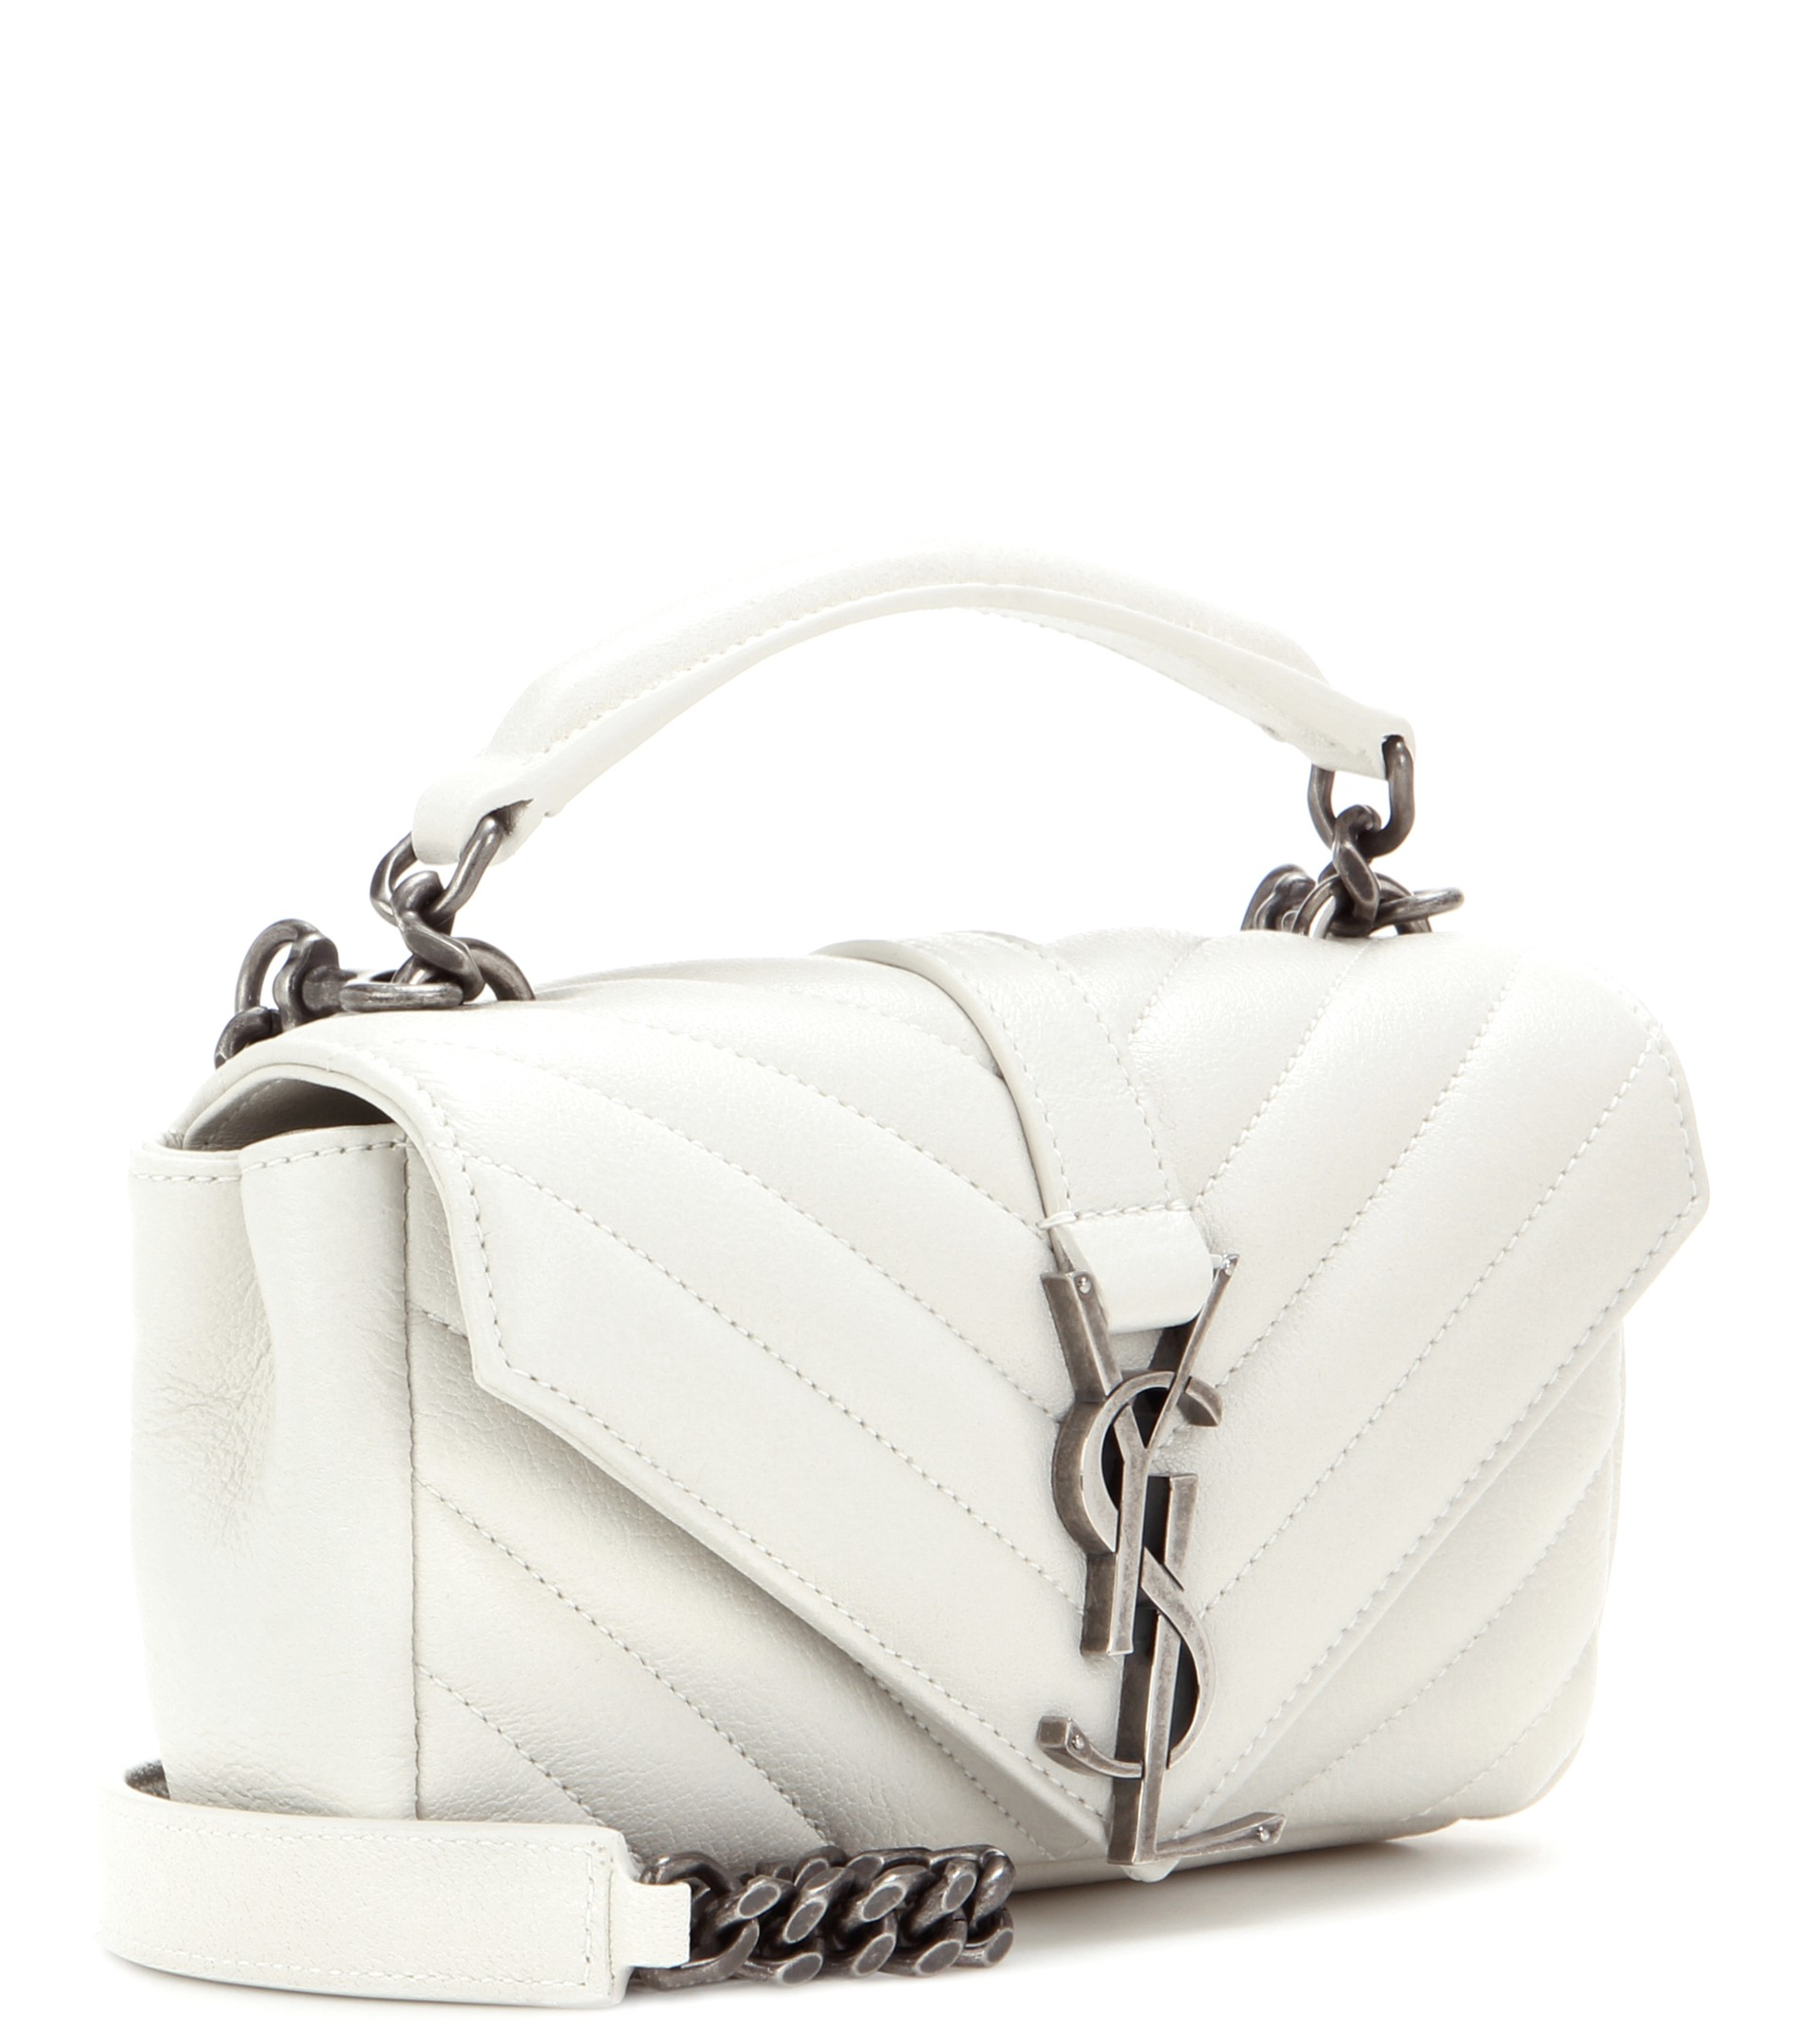 Lyst - Saint Laurent Monogram College Mini Quilted Leather Shoulder Bag in  White 2eb491d054